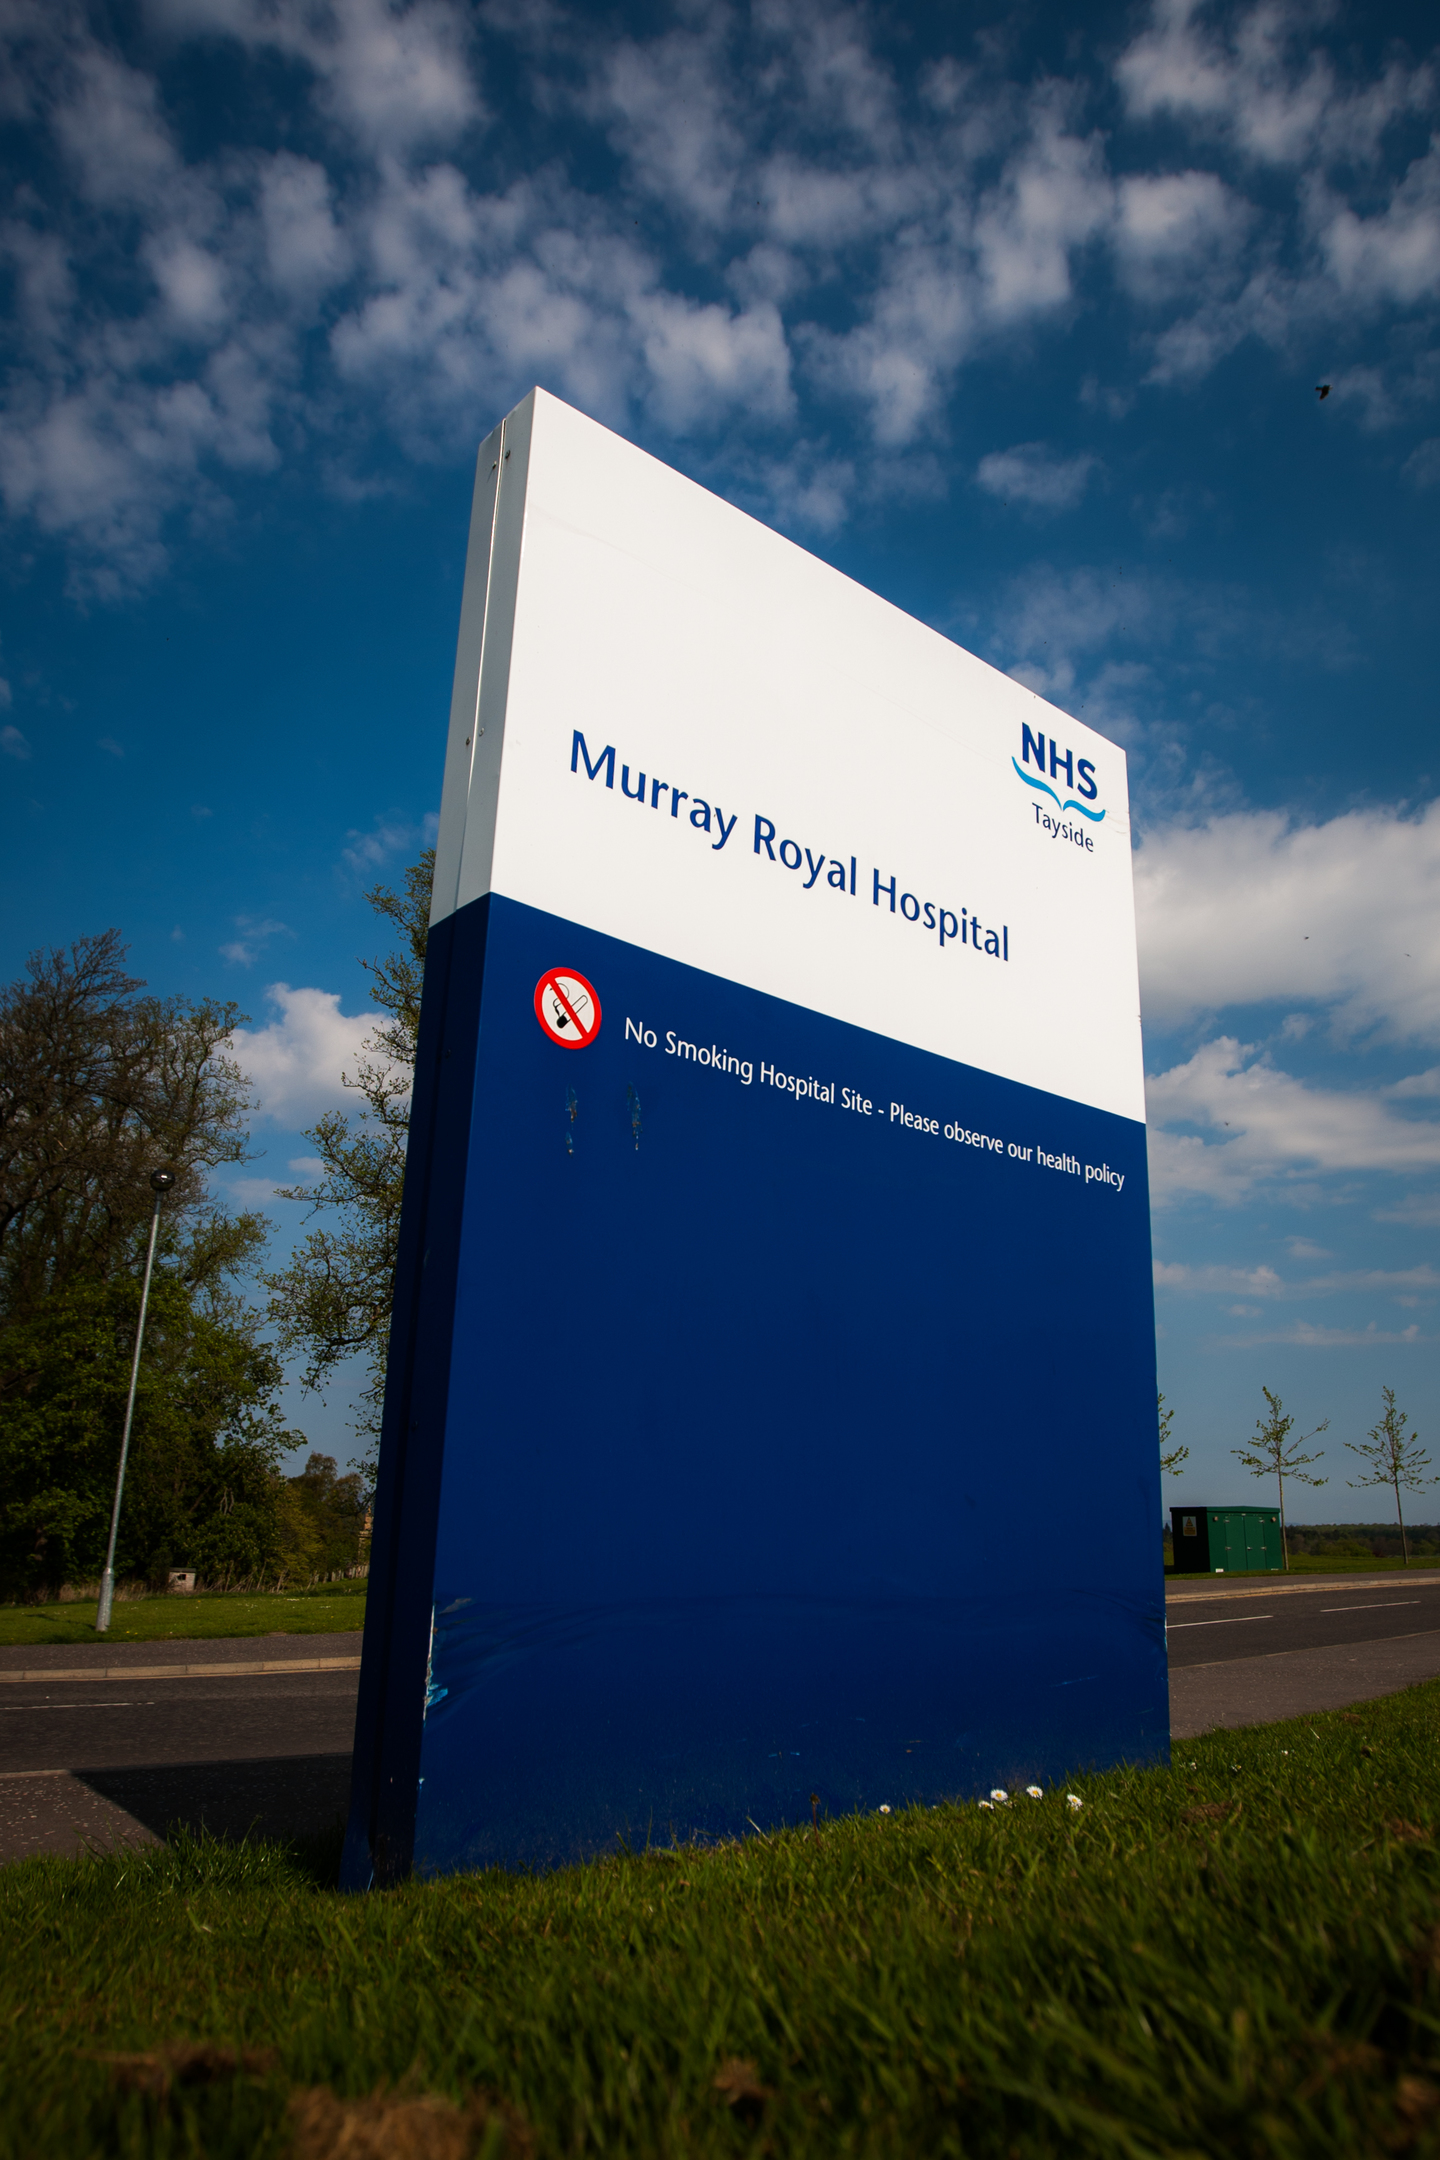 EXCLUSIVE: Murray Royal Hospital deaths investigated - The Courier